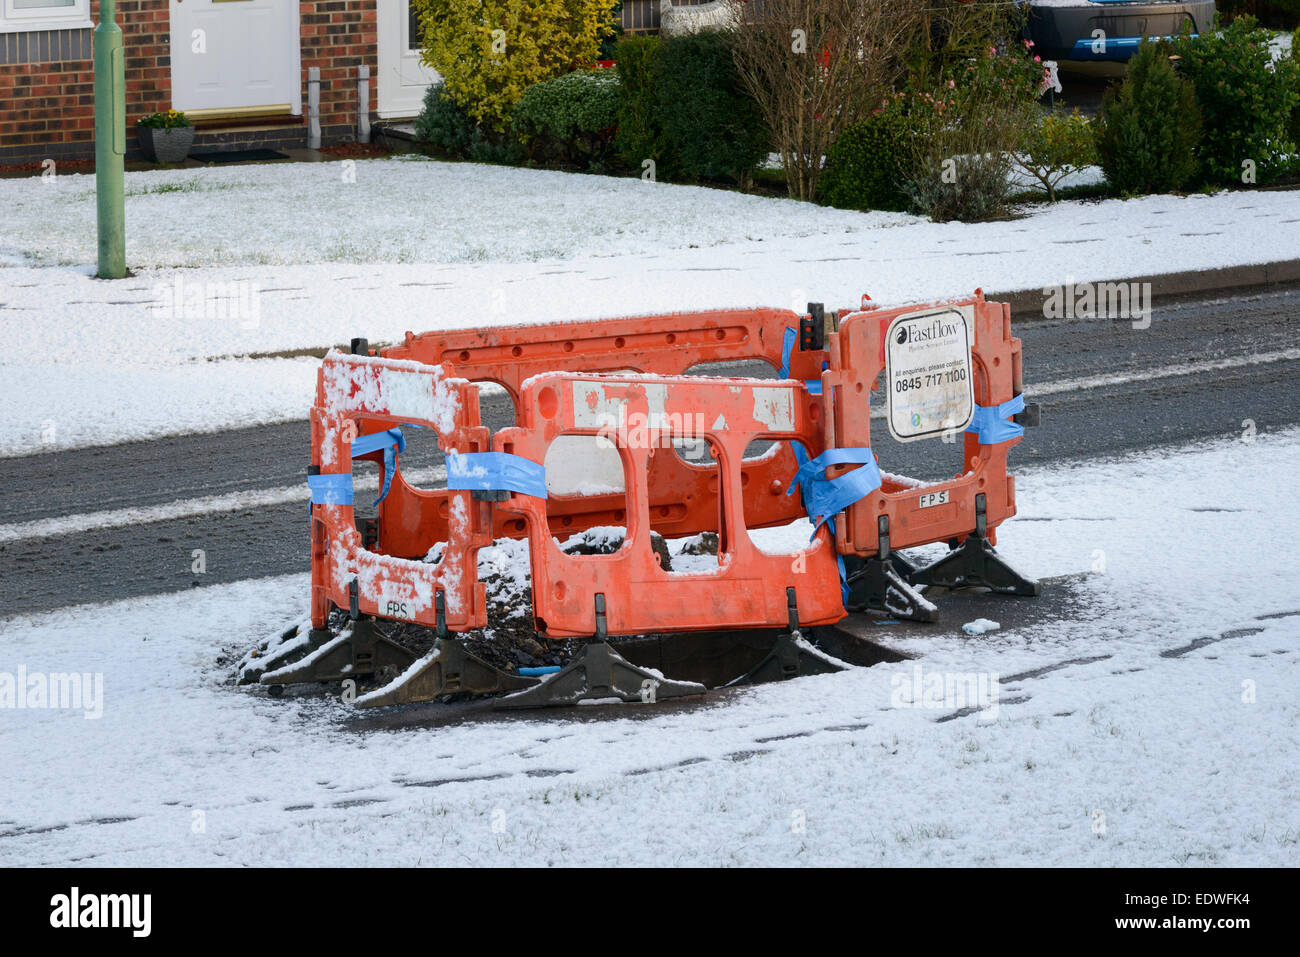 A burst water main under repair - Stock Image